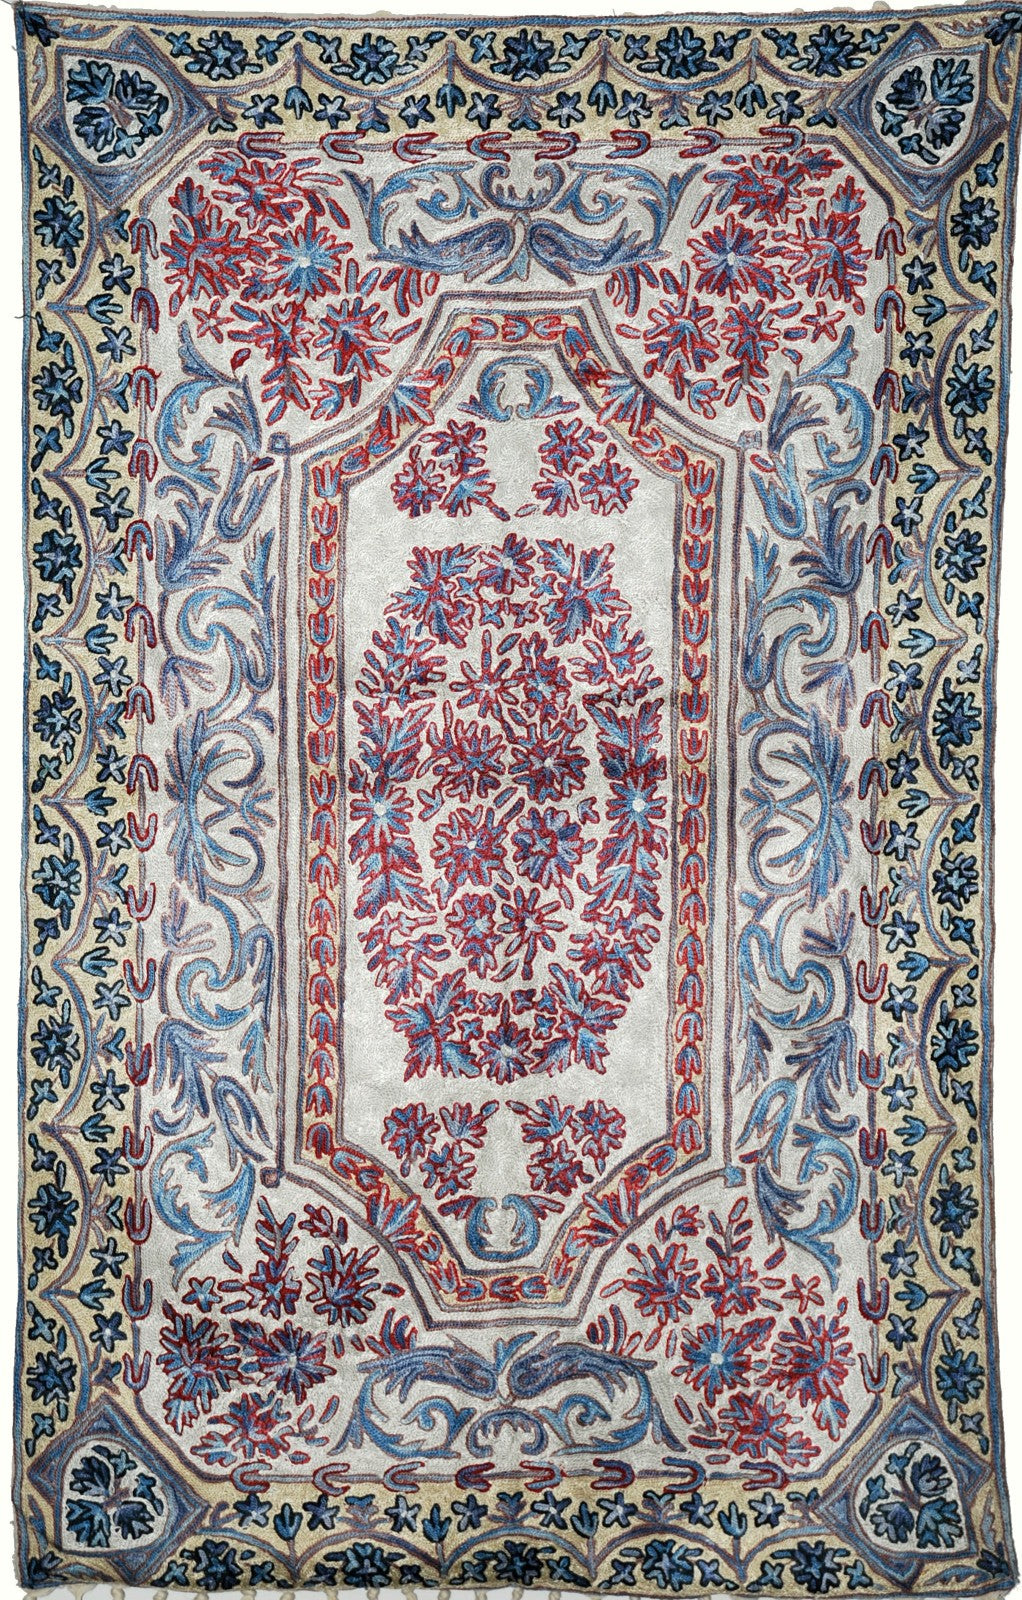 ChainStitch Tapestry Silk Rug, Multicolor Embroidery 2.5x4 feet #CWR10112